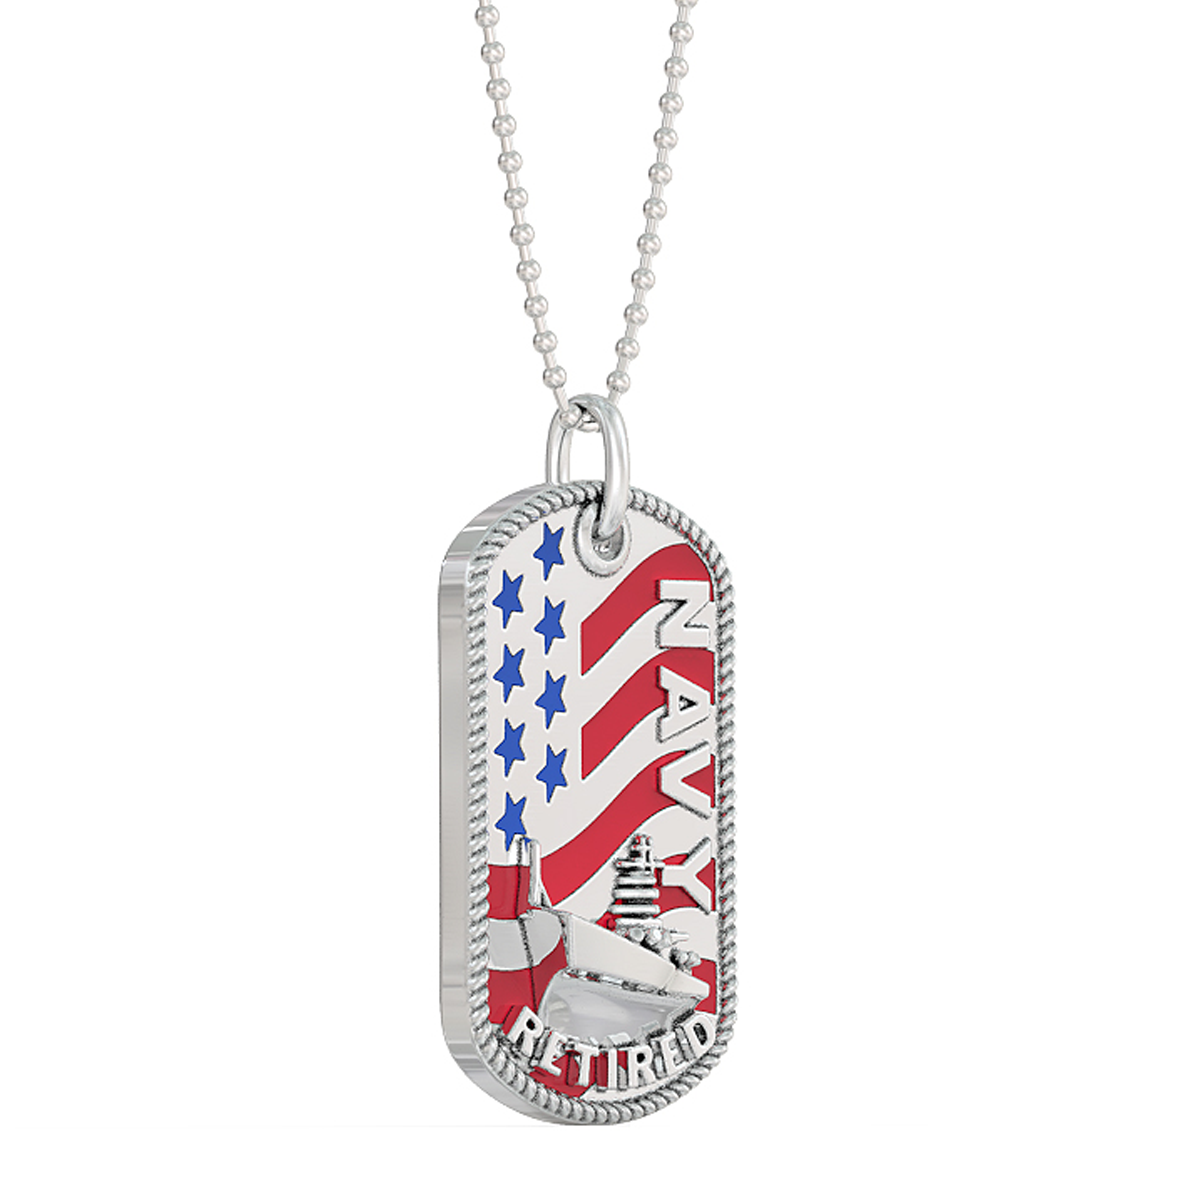 Navy Retired Dog Tag - Pendant and Ball Chain